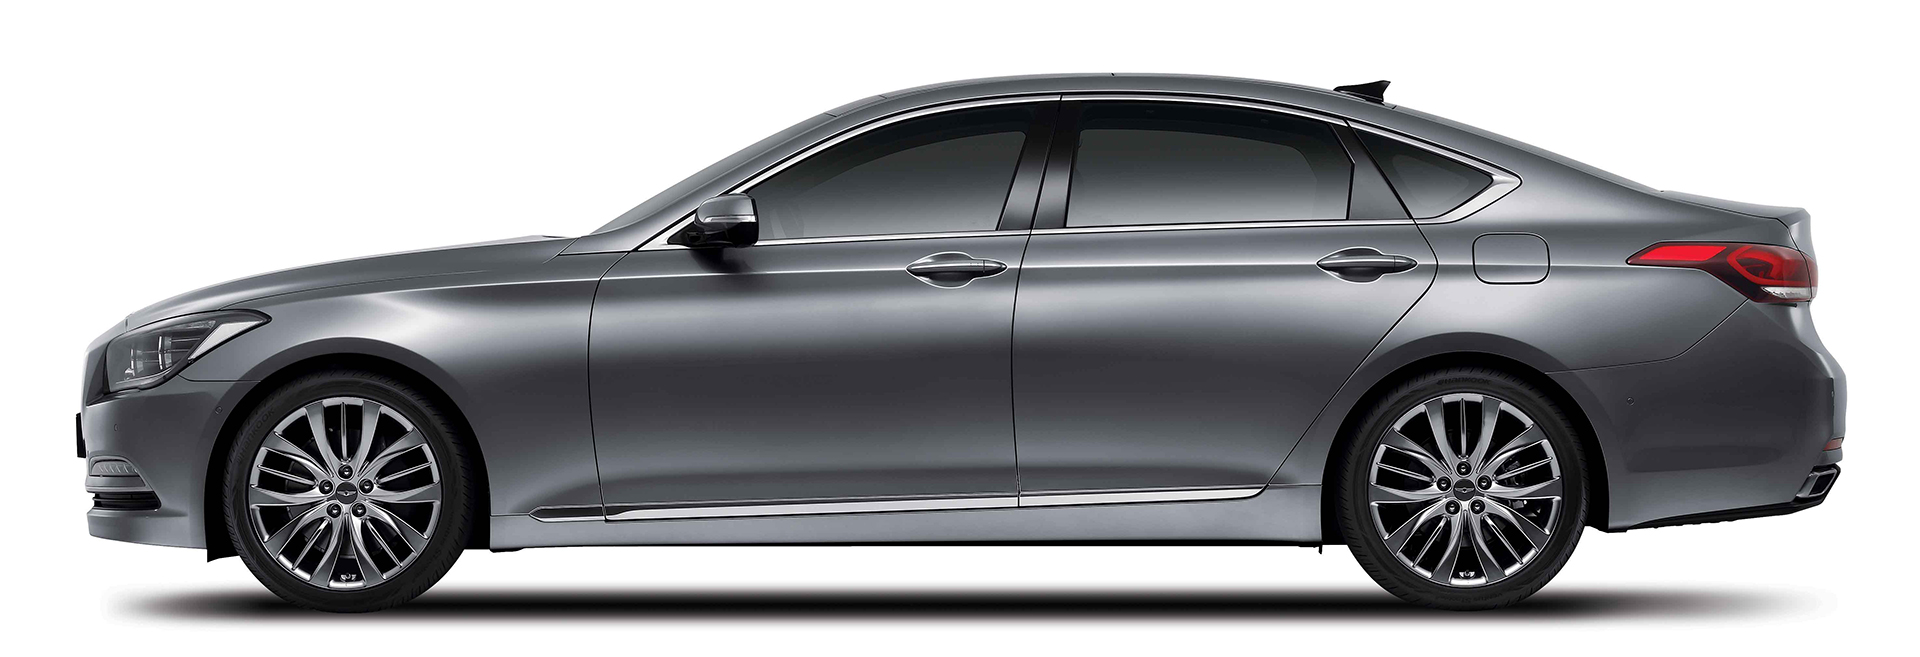 Genesis G90 - 2016 - side-face / profil